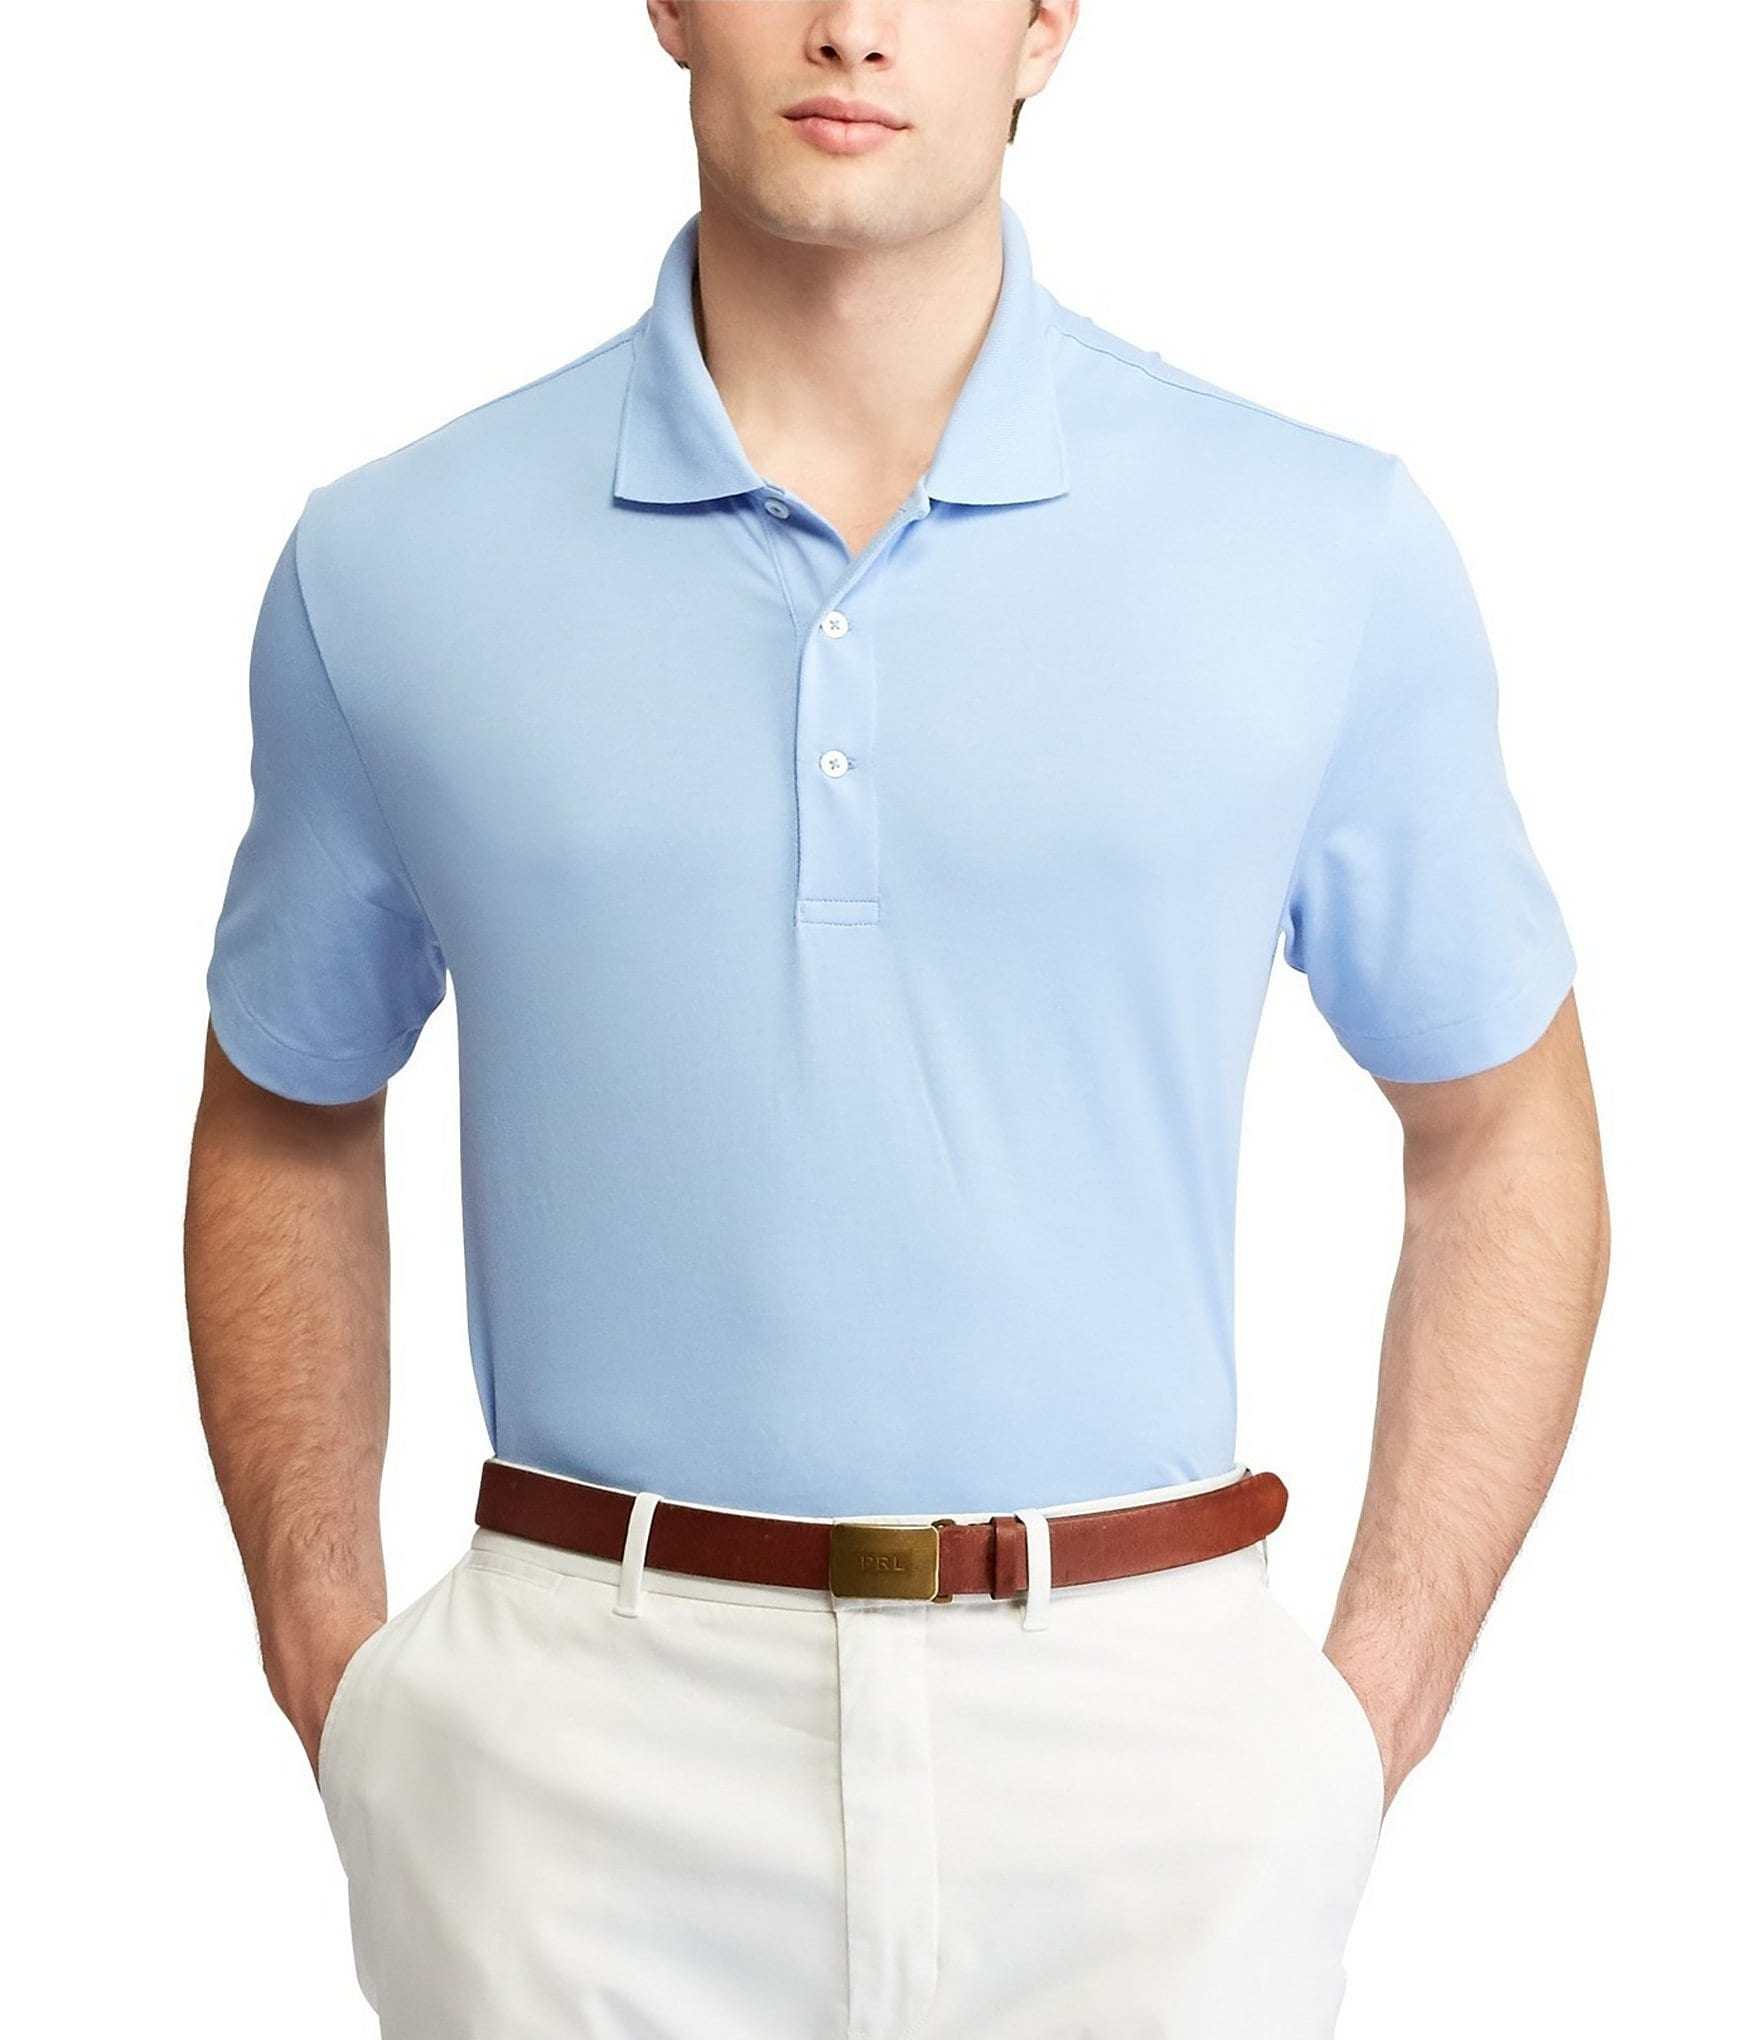 0f9dbd93d Polo Ralph Lauren Men's Golf Shirts | Dillard's